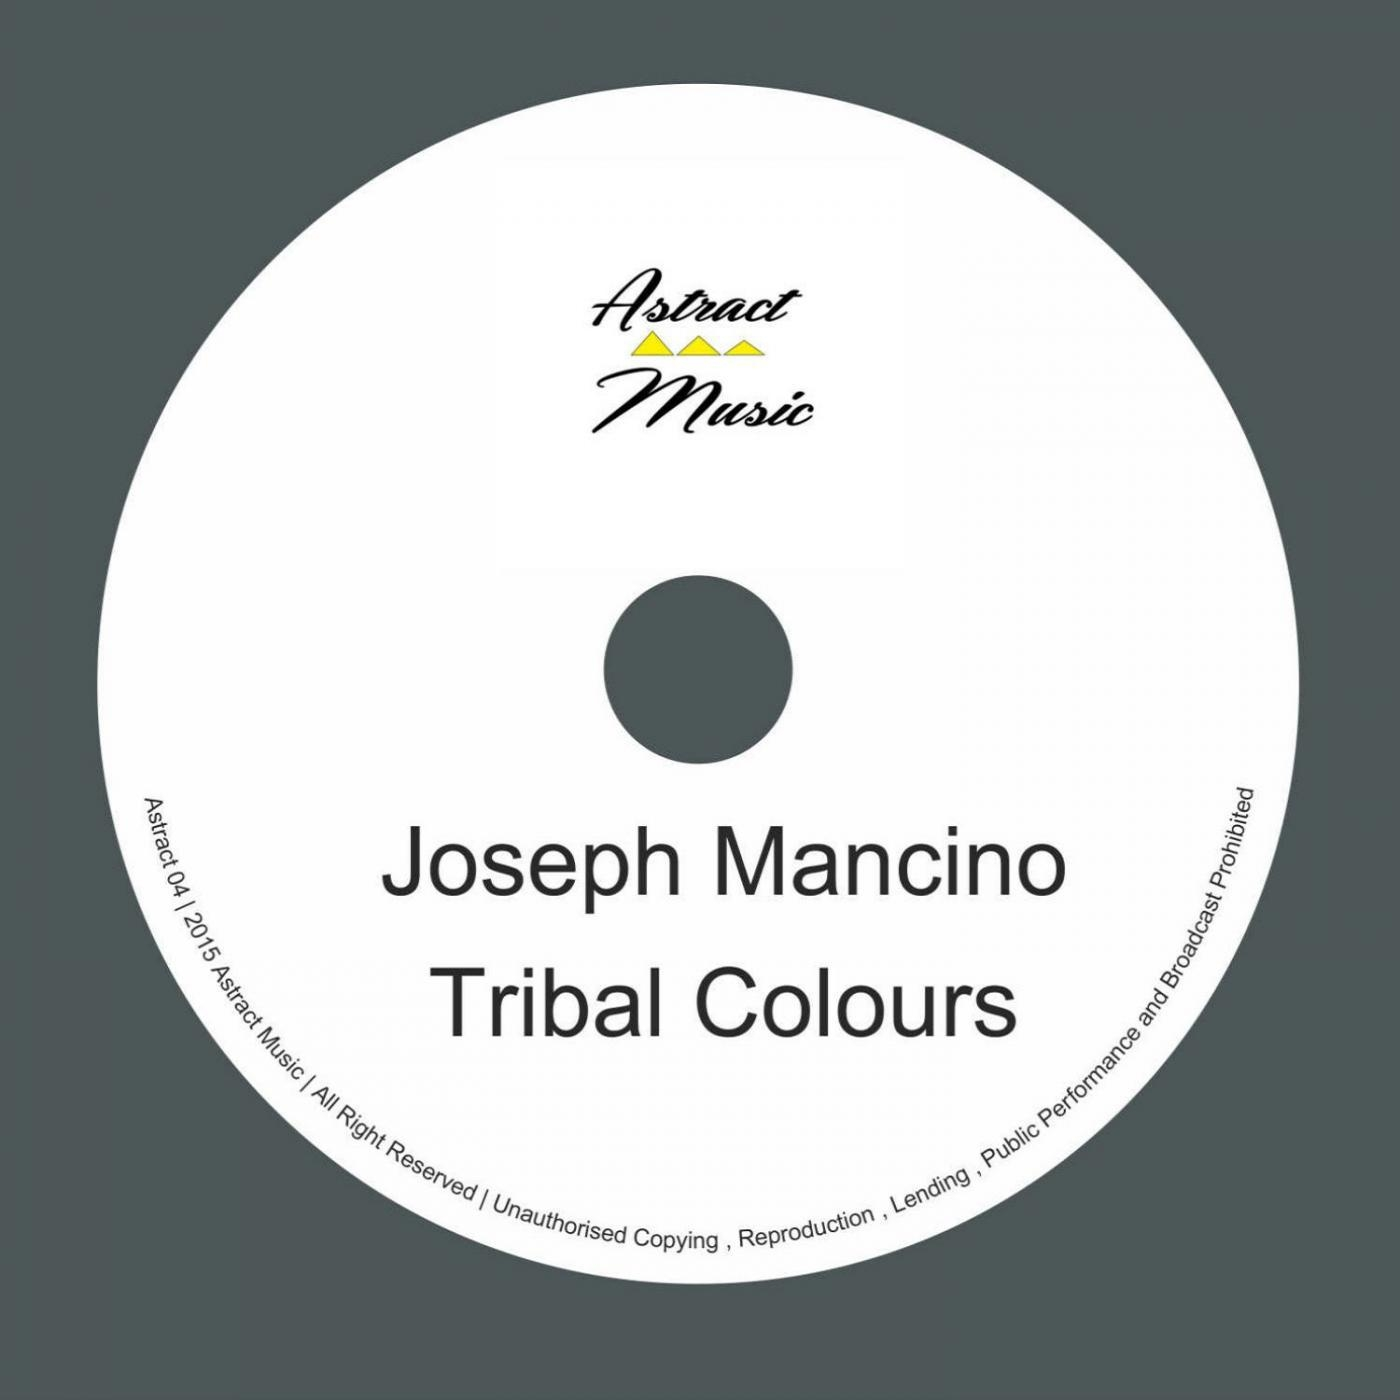 Joseph Mancino - Tribal Colours (Original mix)